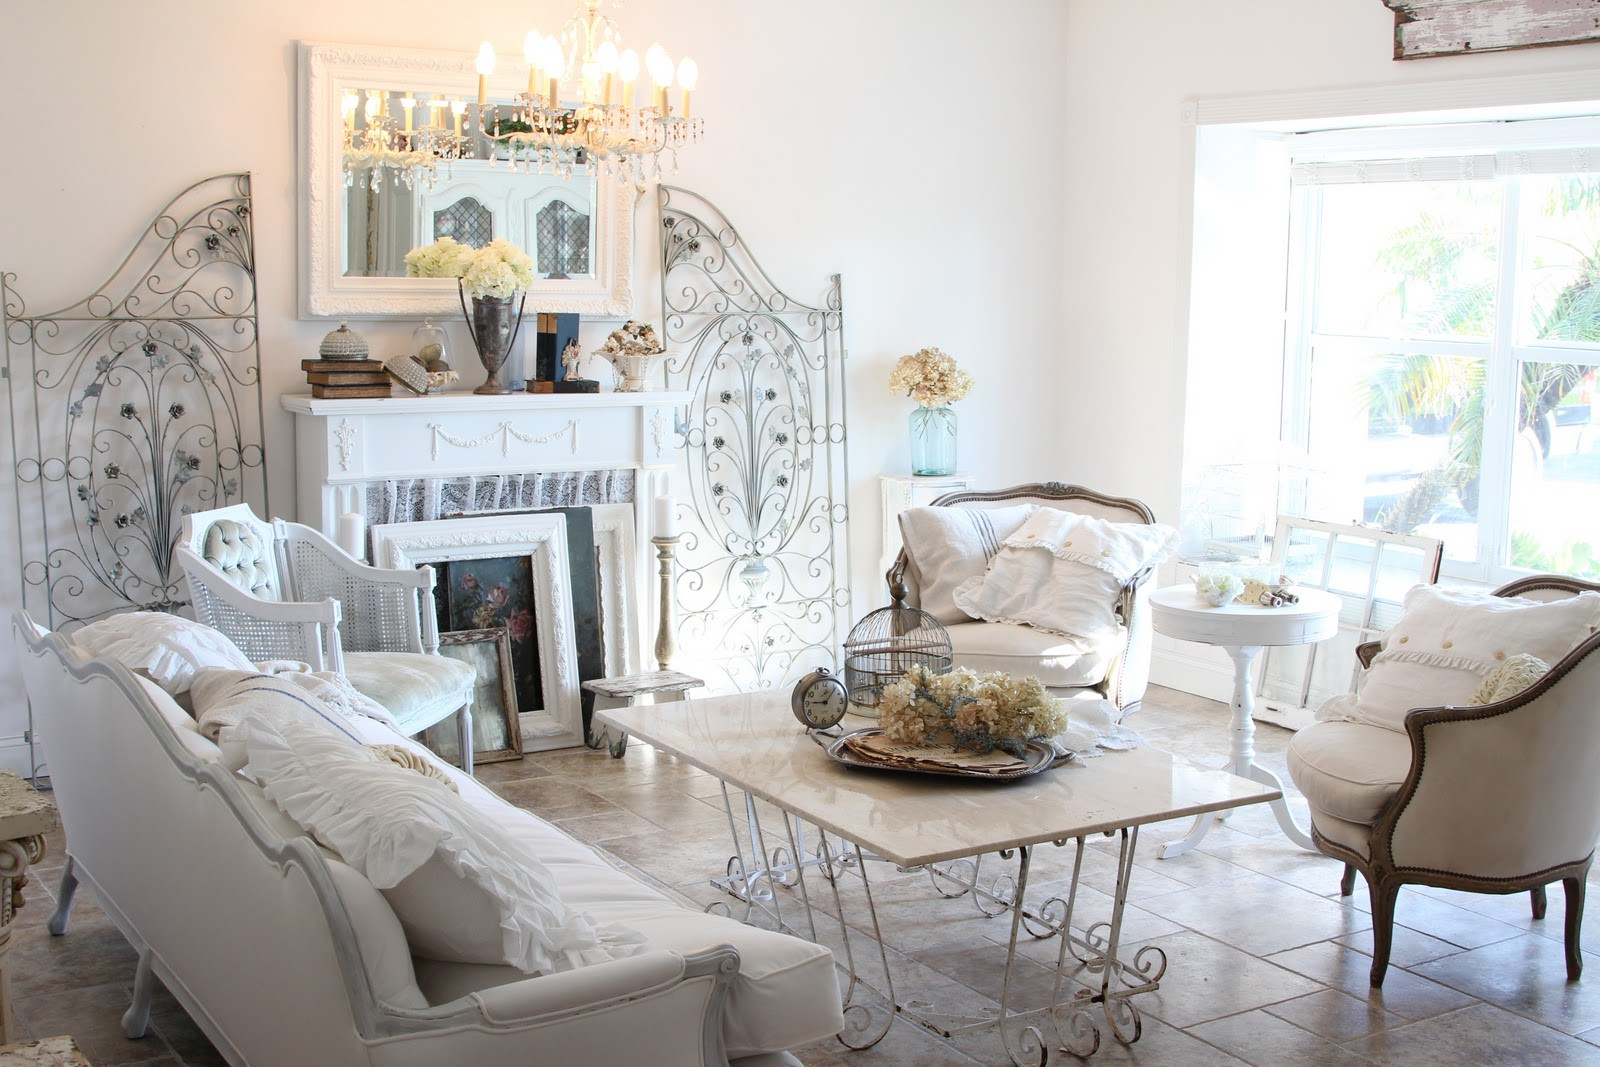 Best ideas about Shabby Chic Room . Save or Pin 37 Dream Shabby Chic Living Room Designs Decoholic Now.